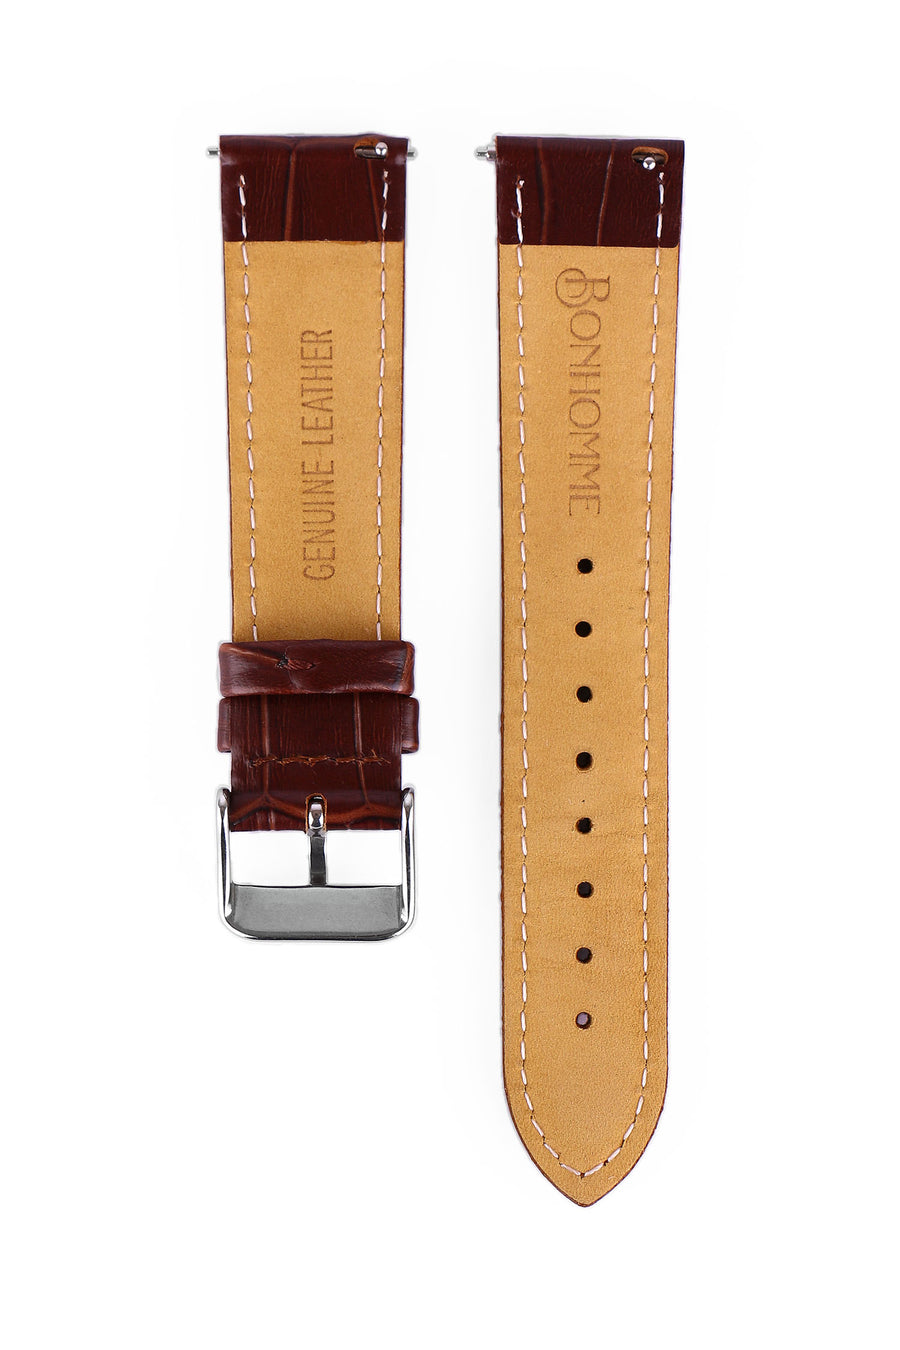 Tan Croc Leather watch strap under view of deboss logo